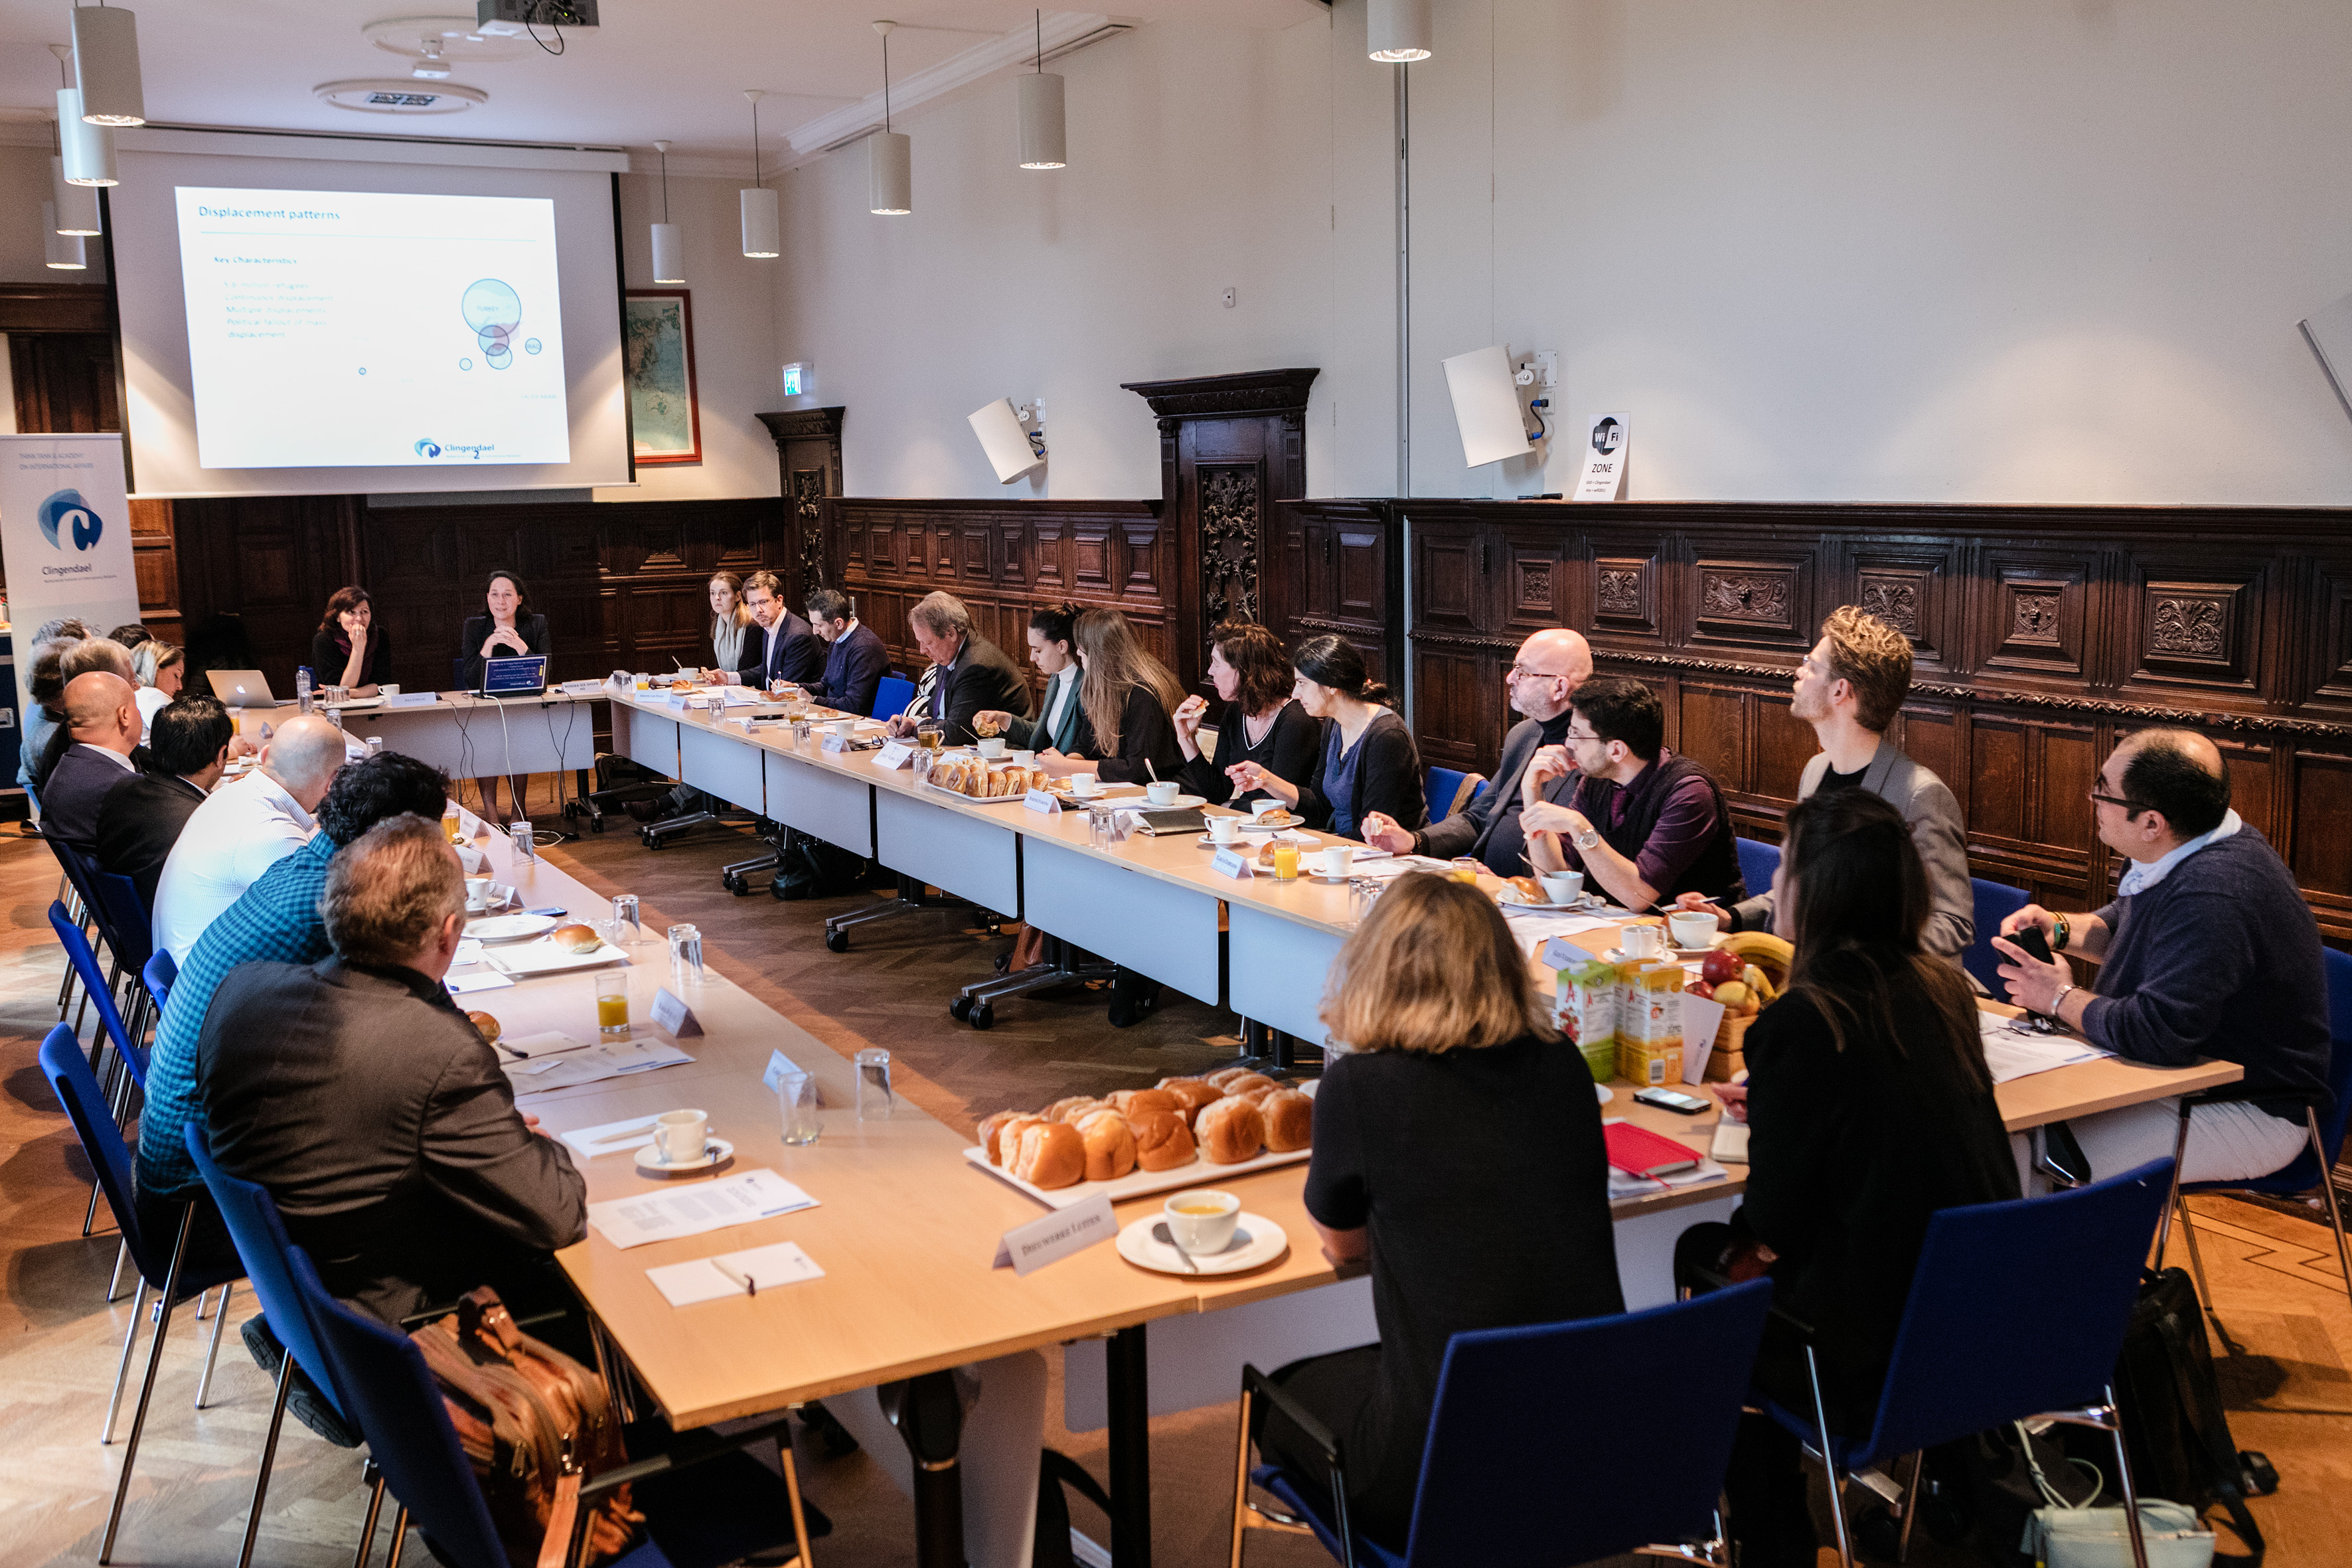 Clingendael lunch debate Syria on civil war participants